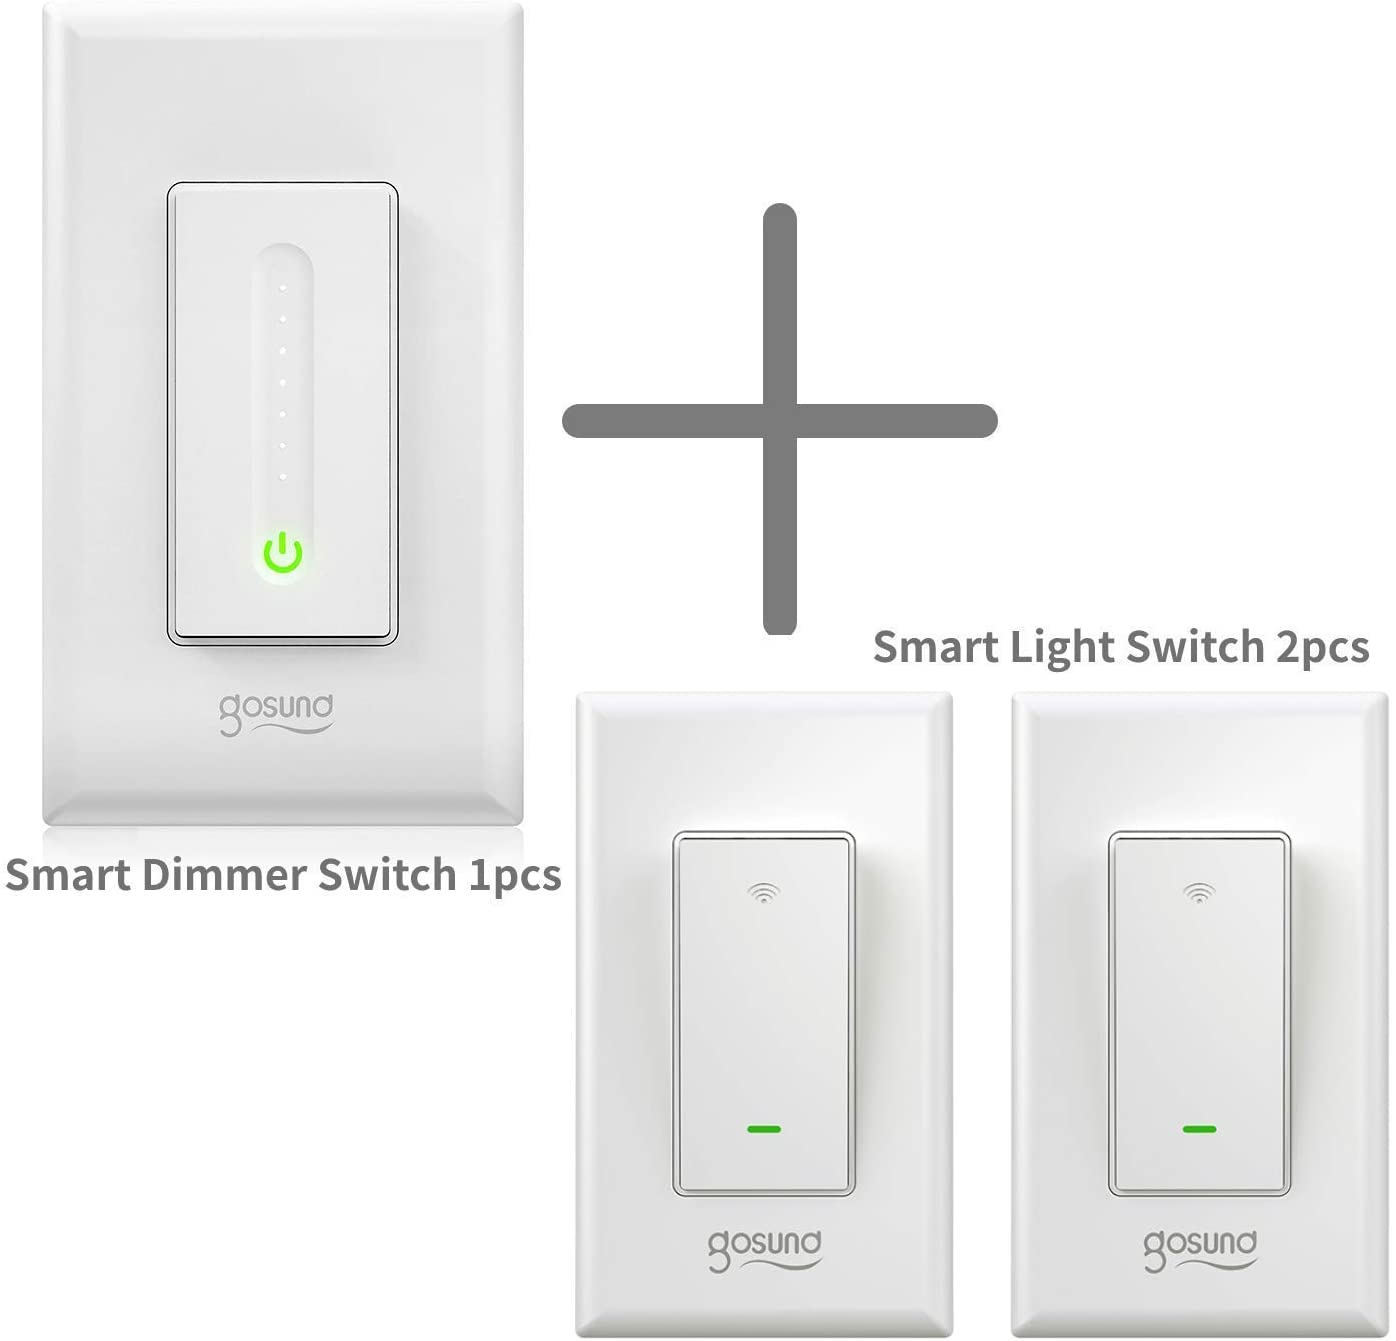 Gosund Smart Wifi Switch Bundle, Smart Dimmer Switch 1pcs and Smart Light Switch 2pcs that Compatible with Alexa and Google Home